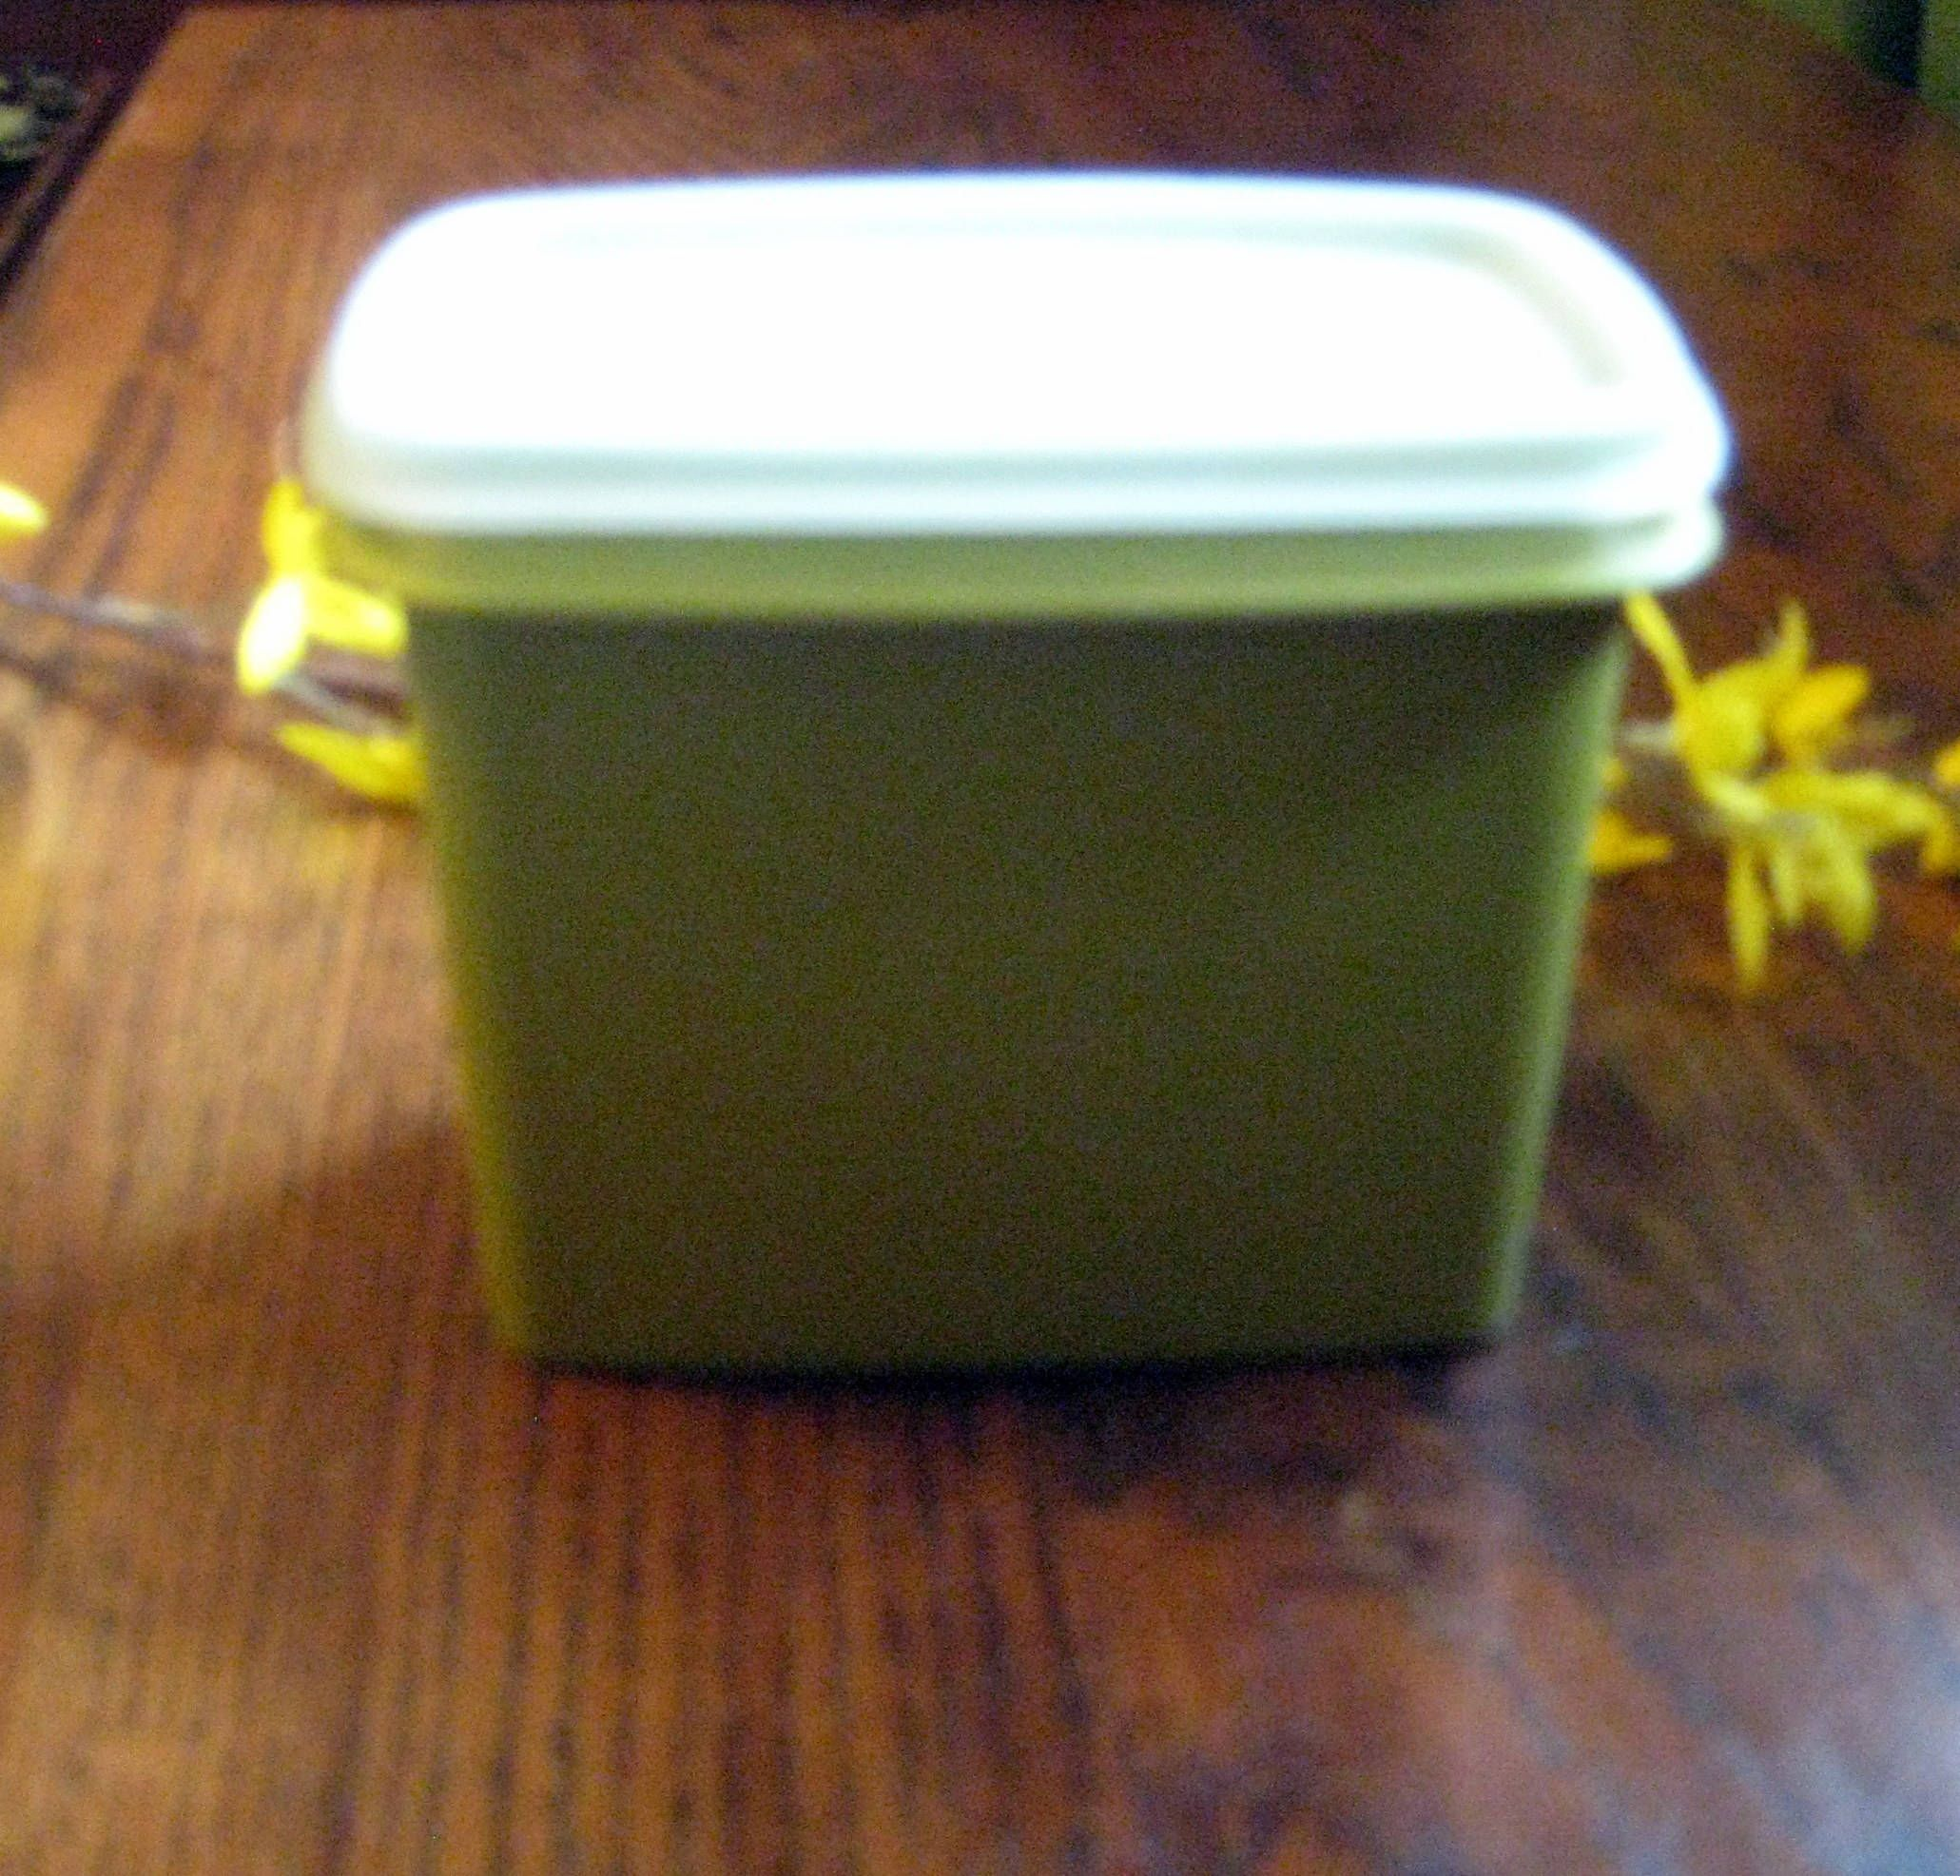 Tupperware Storage Container,Rectangle Tupperware,Olive Green  Tupperware,Kitchen Containers,Picnic Storage